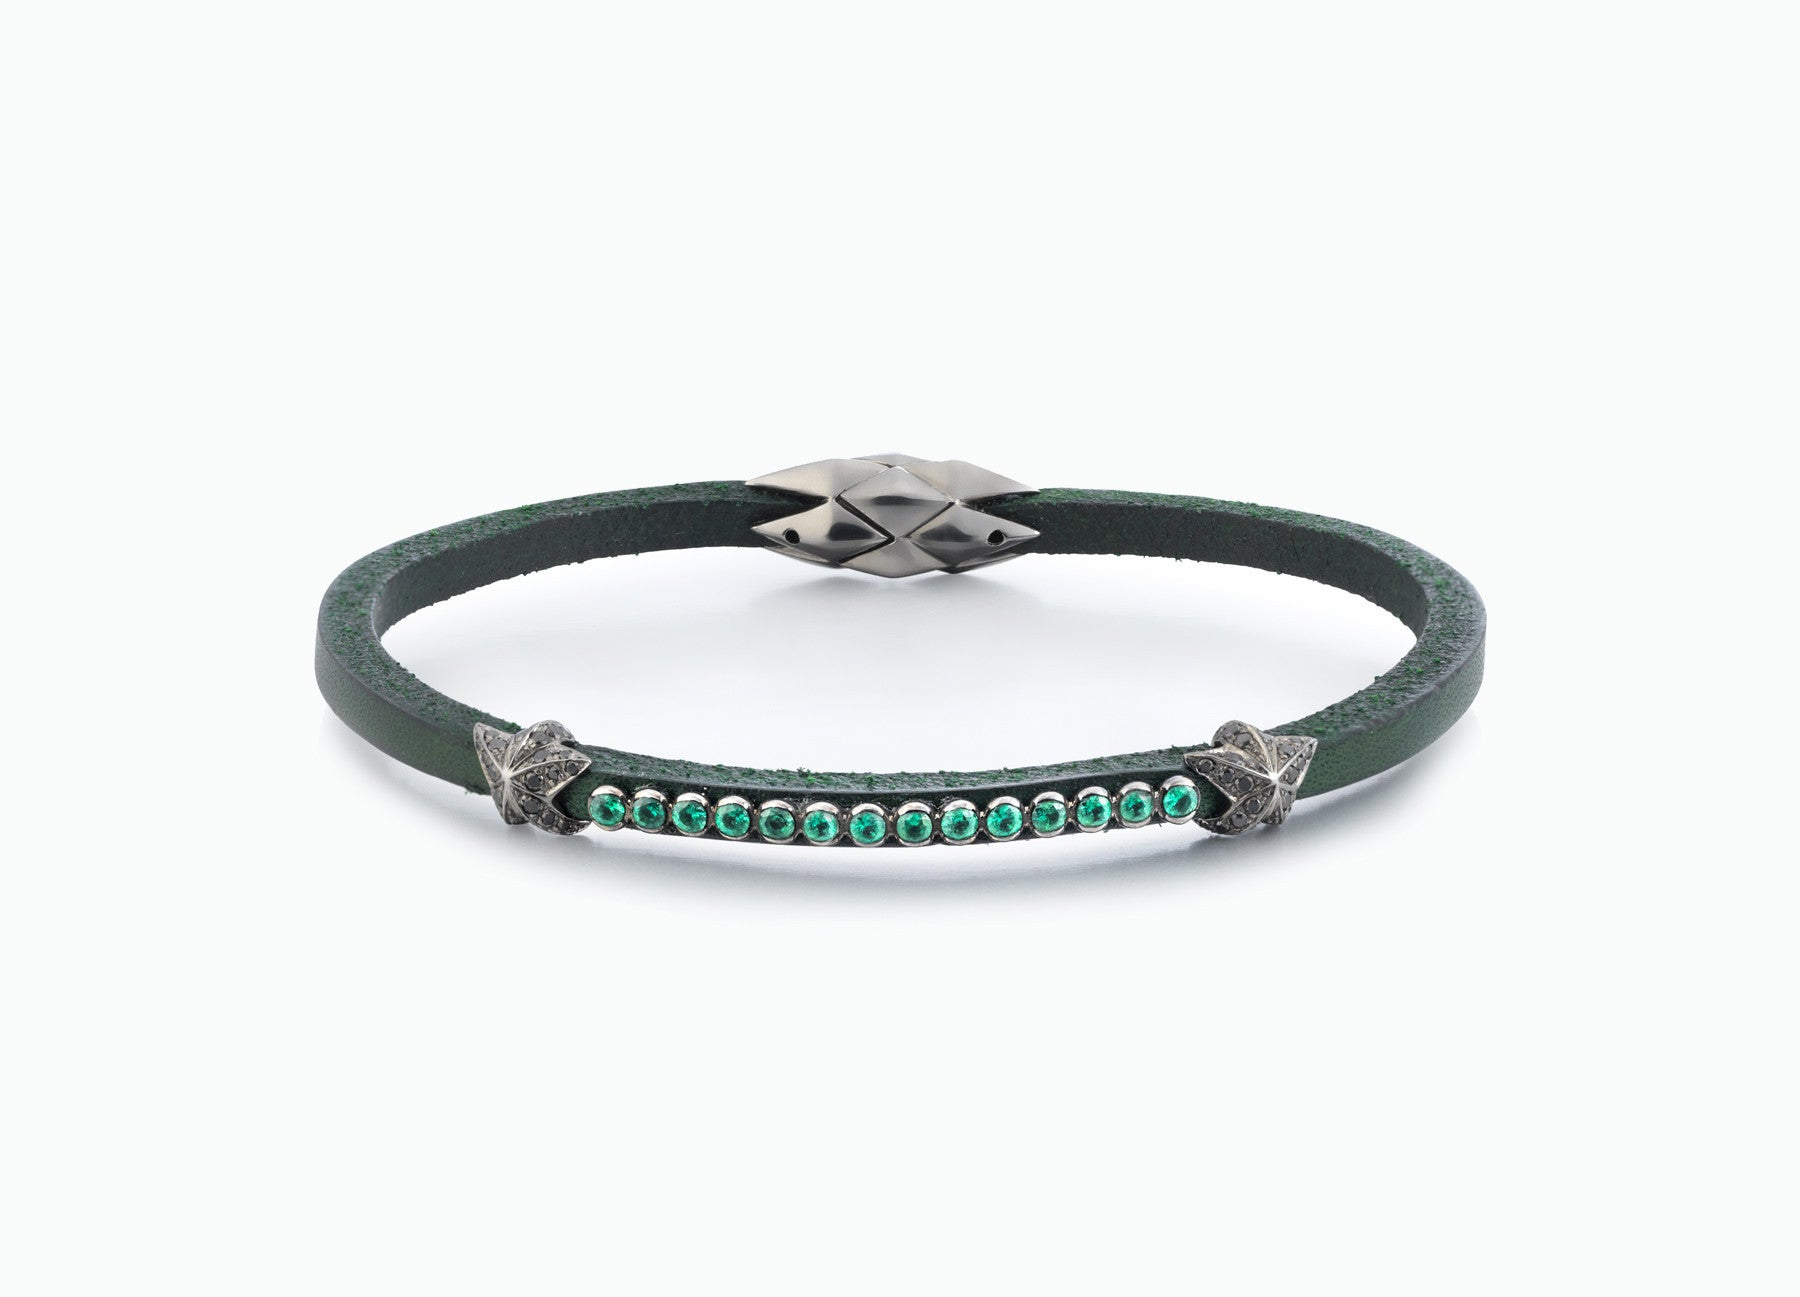 WRAP BRACELETS CITY RACING GREEN SINGLE WRAP